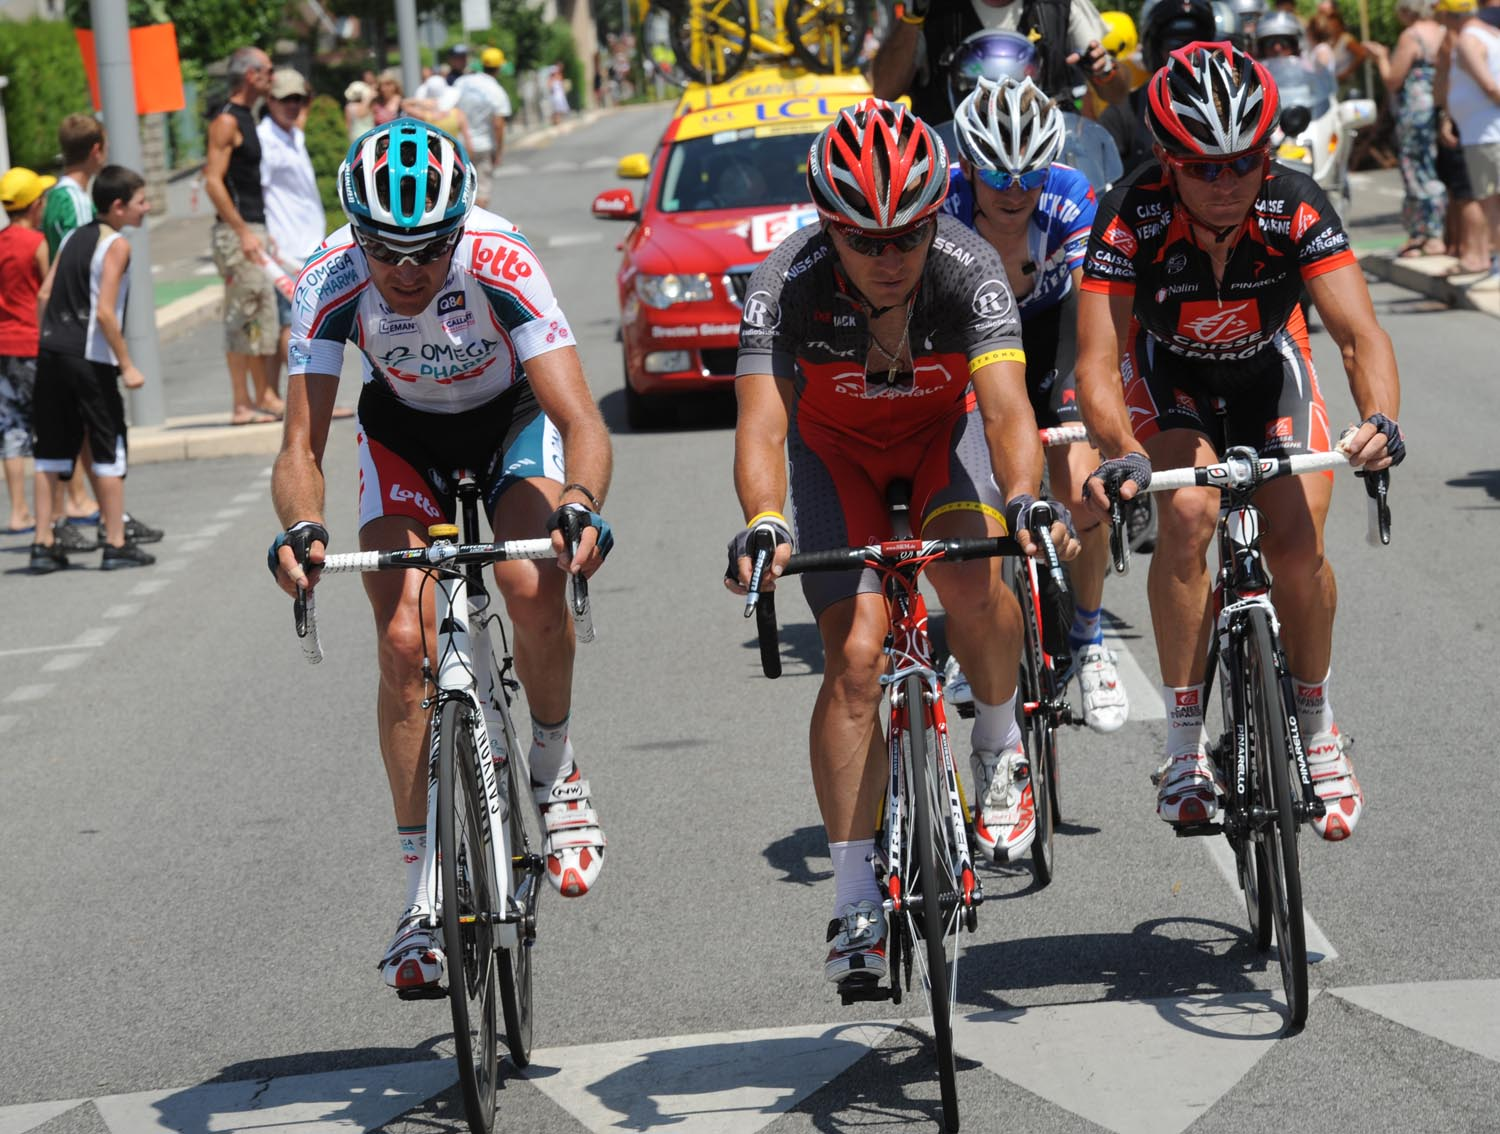 Sergio Paulinho escape, Tour de France 2010, stage 10